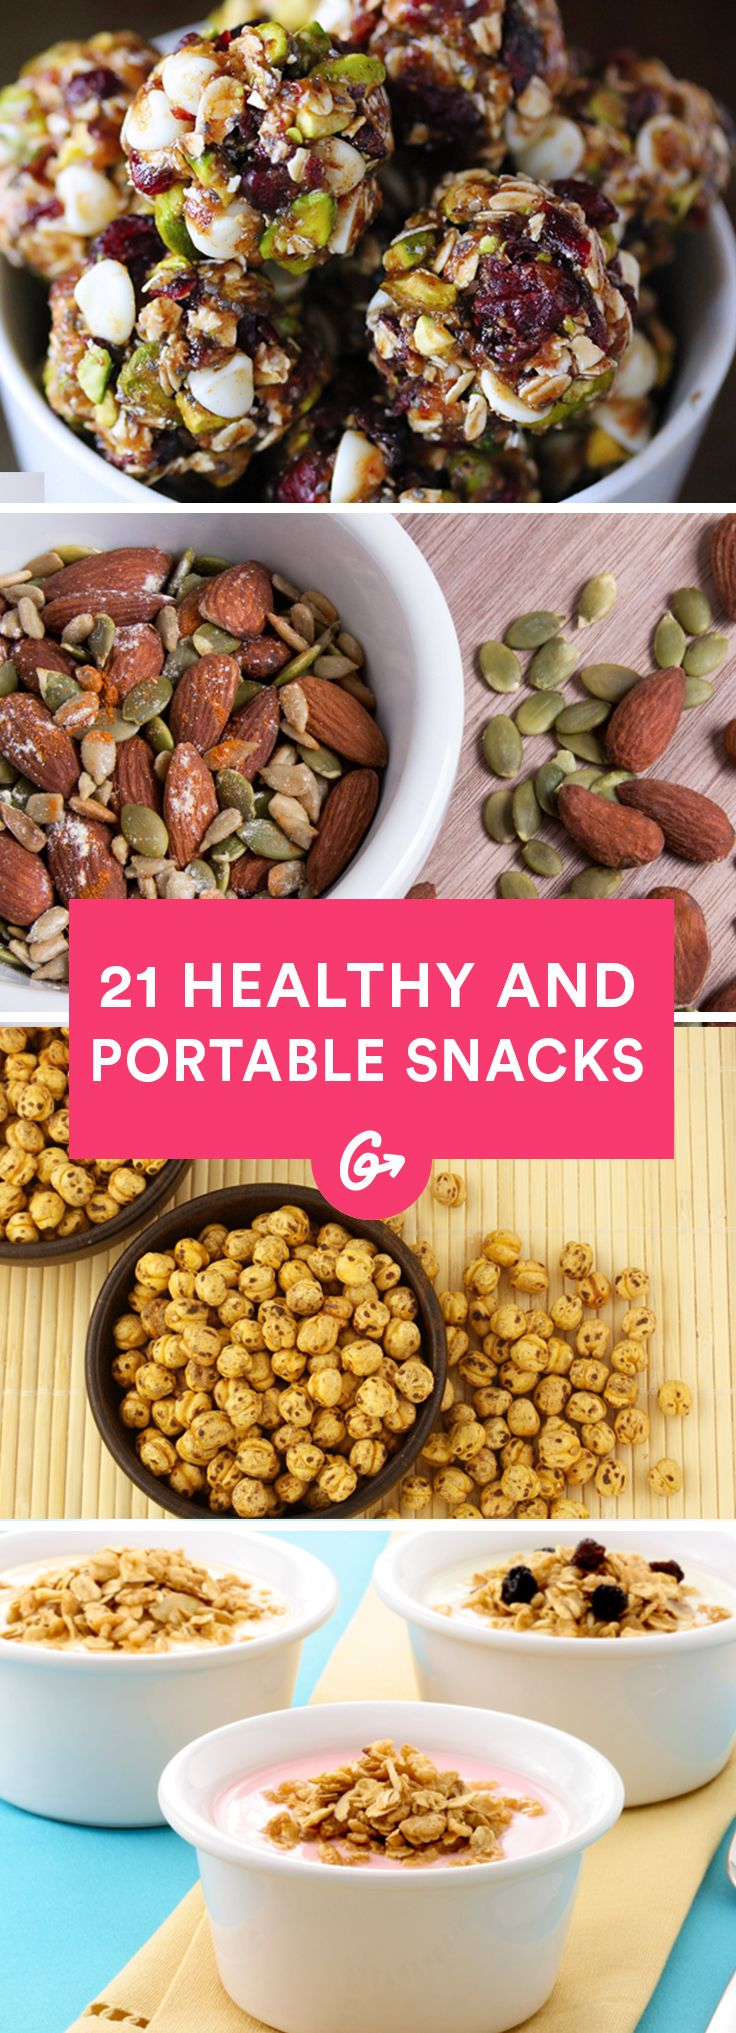 Nosh on some strategic snacks to avoid crashed and bring back that alert, energized state of mind. #healthy #snacks http://greatist.com/eat/portable-energy-boosting-snacks